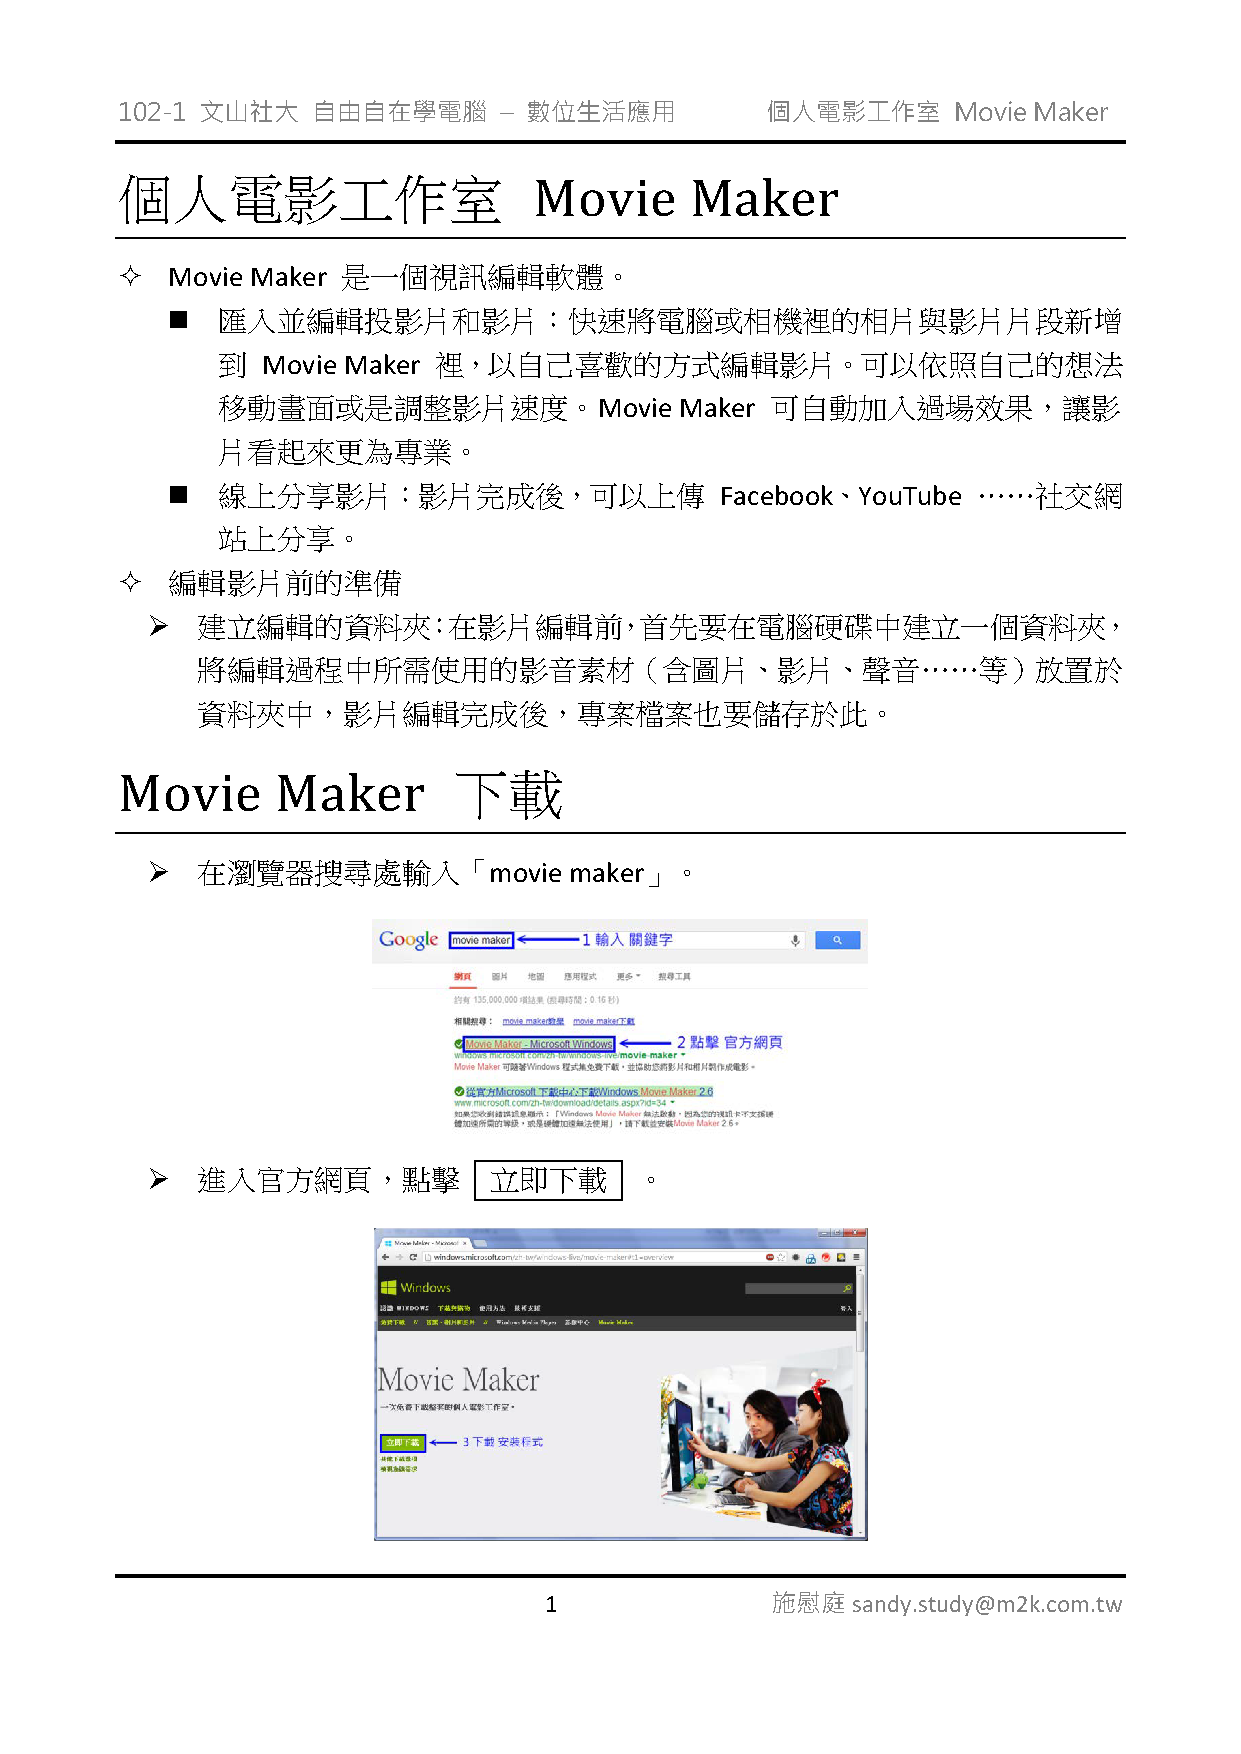 12 個人電影工作室 Movie Maker 頁面 1